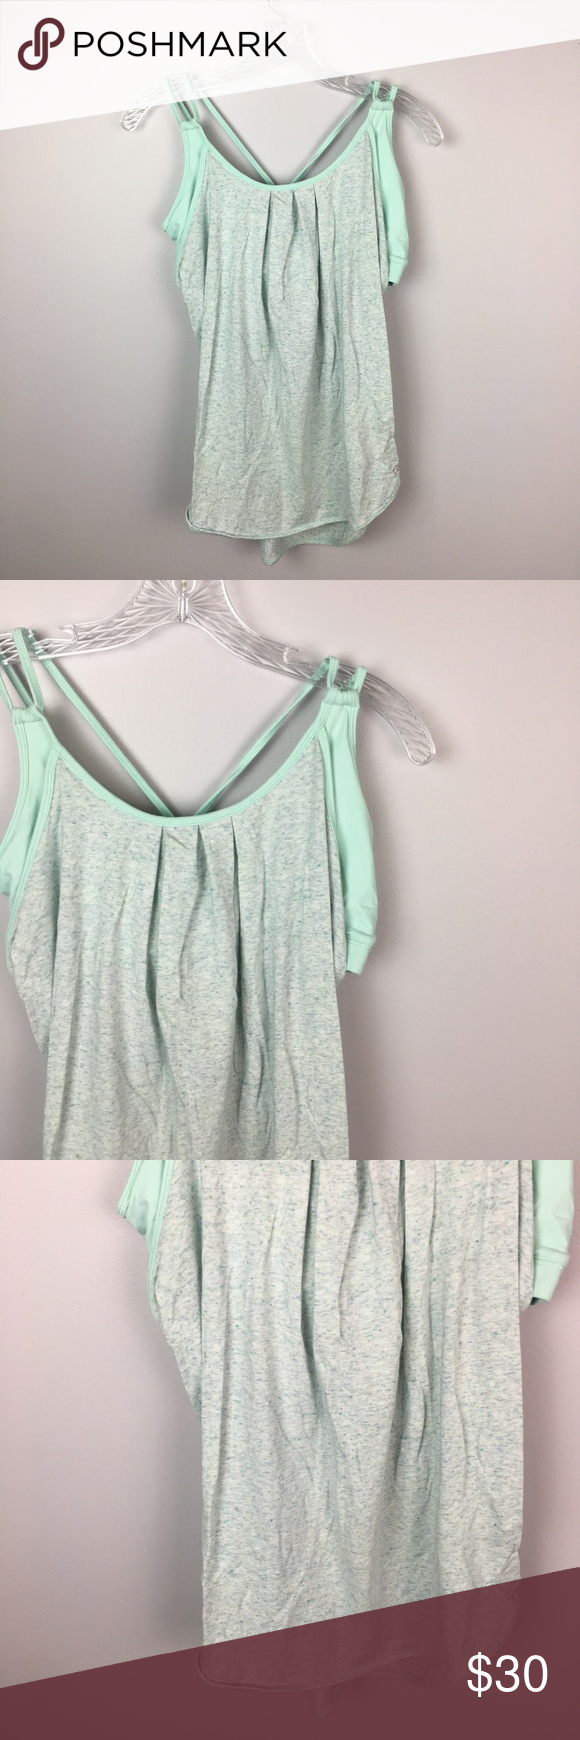 0fca9d565989f Calia built in sports bra tank top mint and grey M Calia by Carrie  Underwood mint green and grey built in sports bra tank top - size medium -  In excellent ...